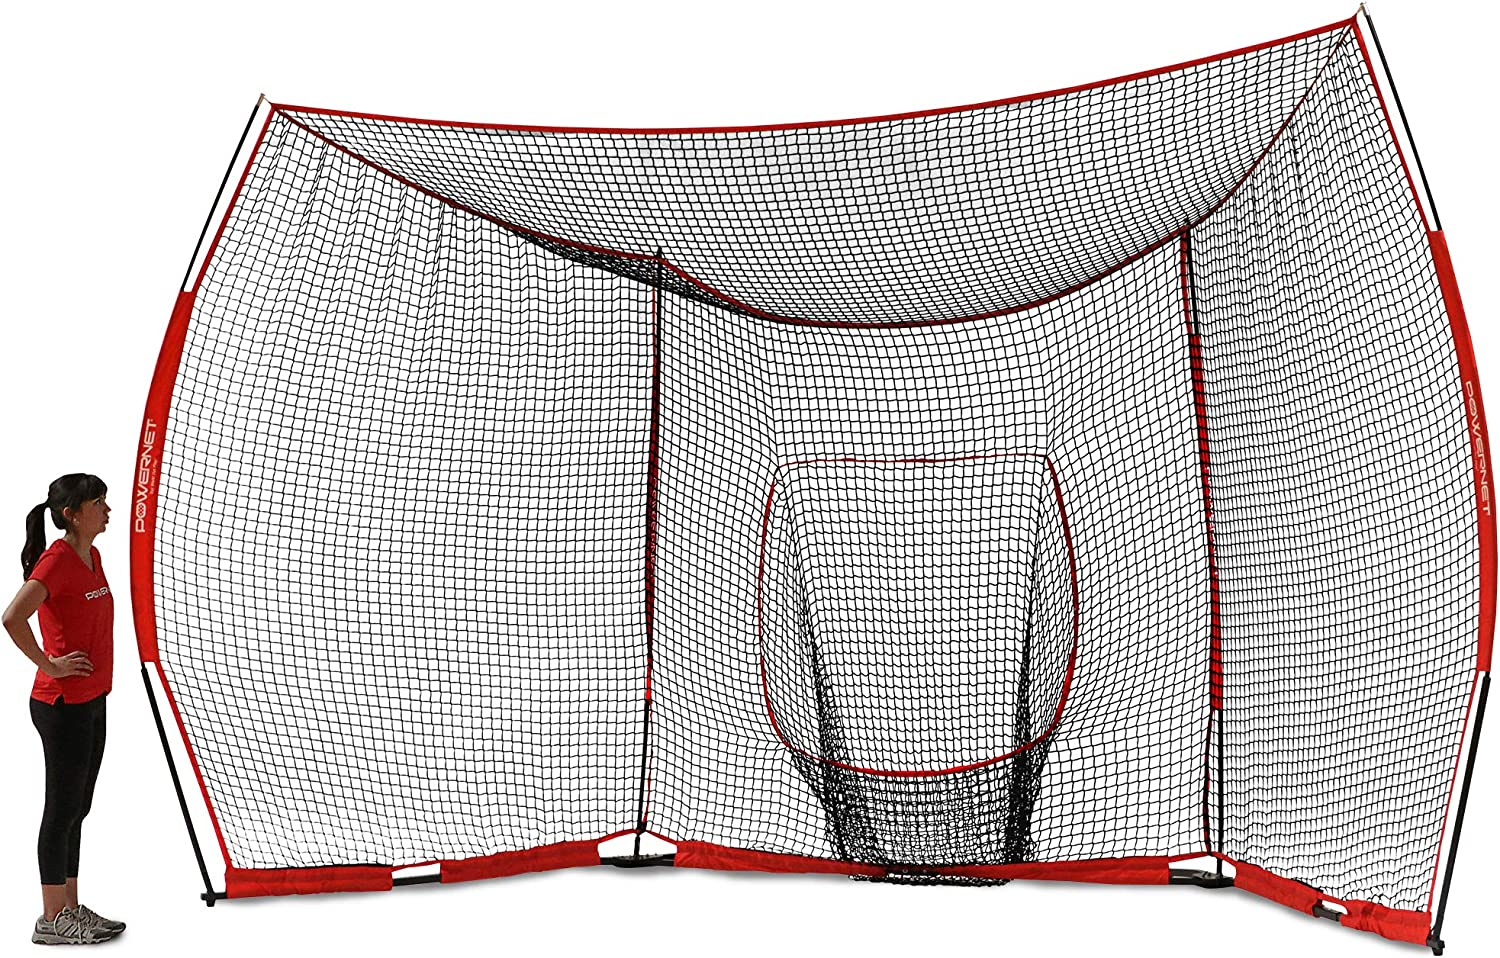 PowerNet Portable Baseball Backstop Large 16 Foot Wide by 9 Foot High Fully Collapsible Easy to Transport Portable w Instant Setup No Tools Required Turns Any Open Space Into a Baseball Diamond